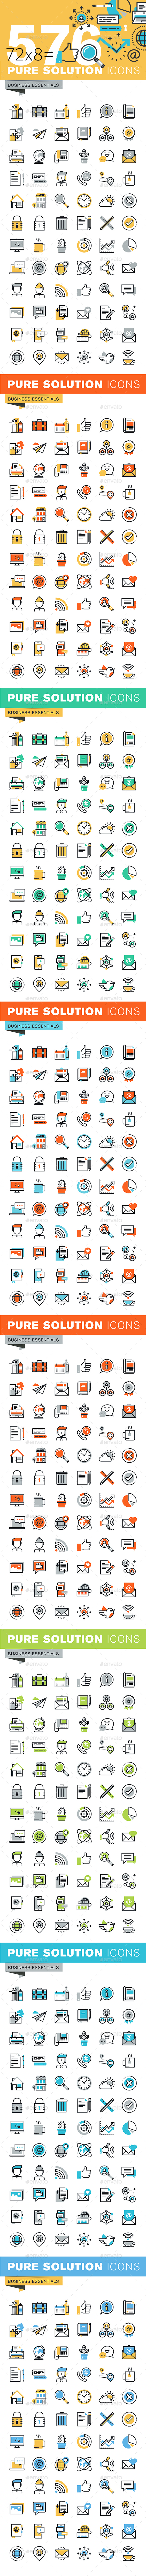 Set of Thin Line Flat Design Icons of Business Essentials - Business Icons